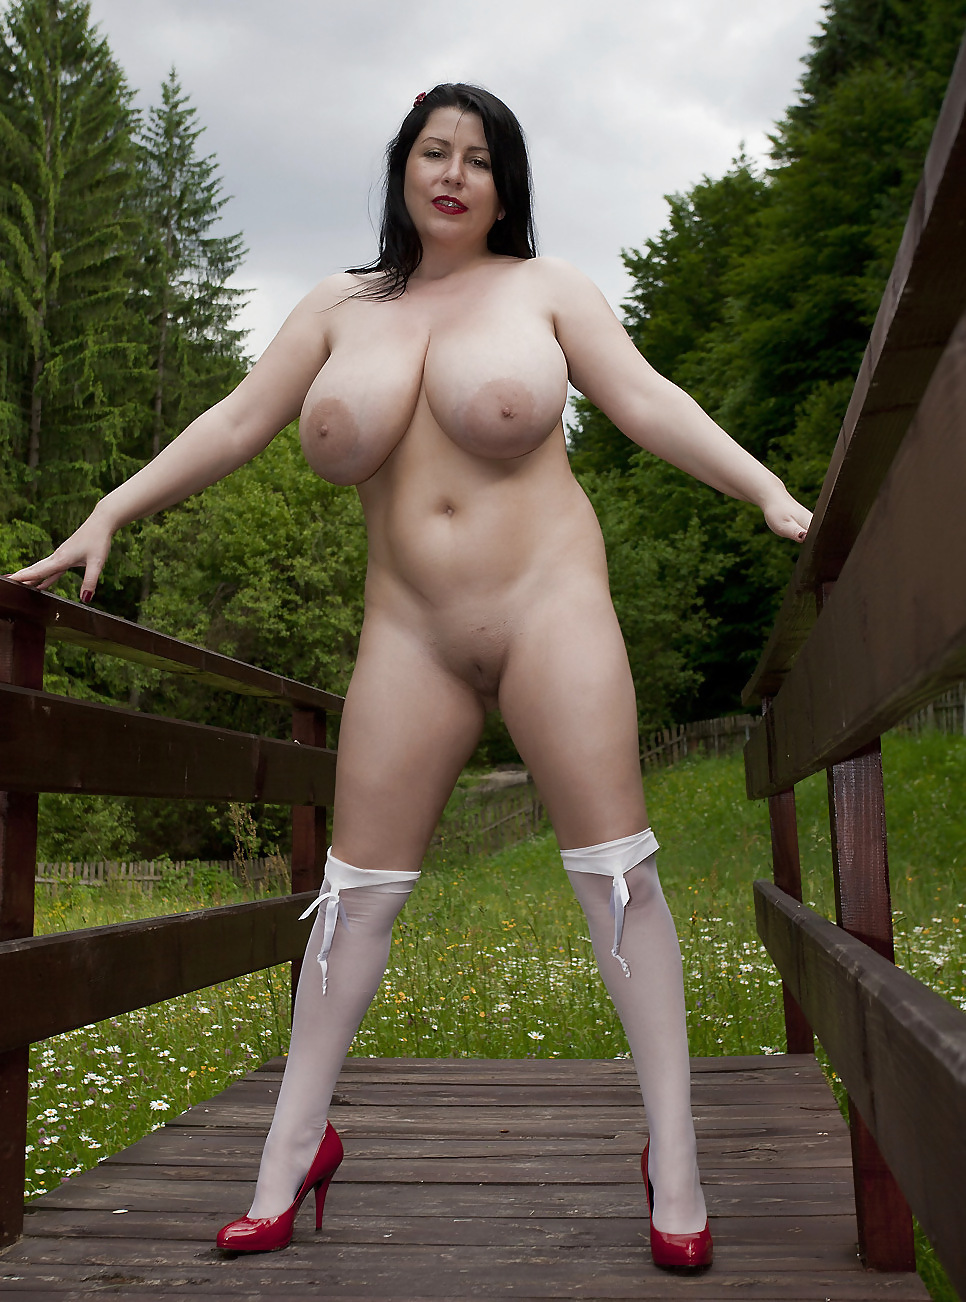 penny-big-boobs-nude-banged-mature-woman